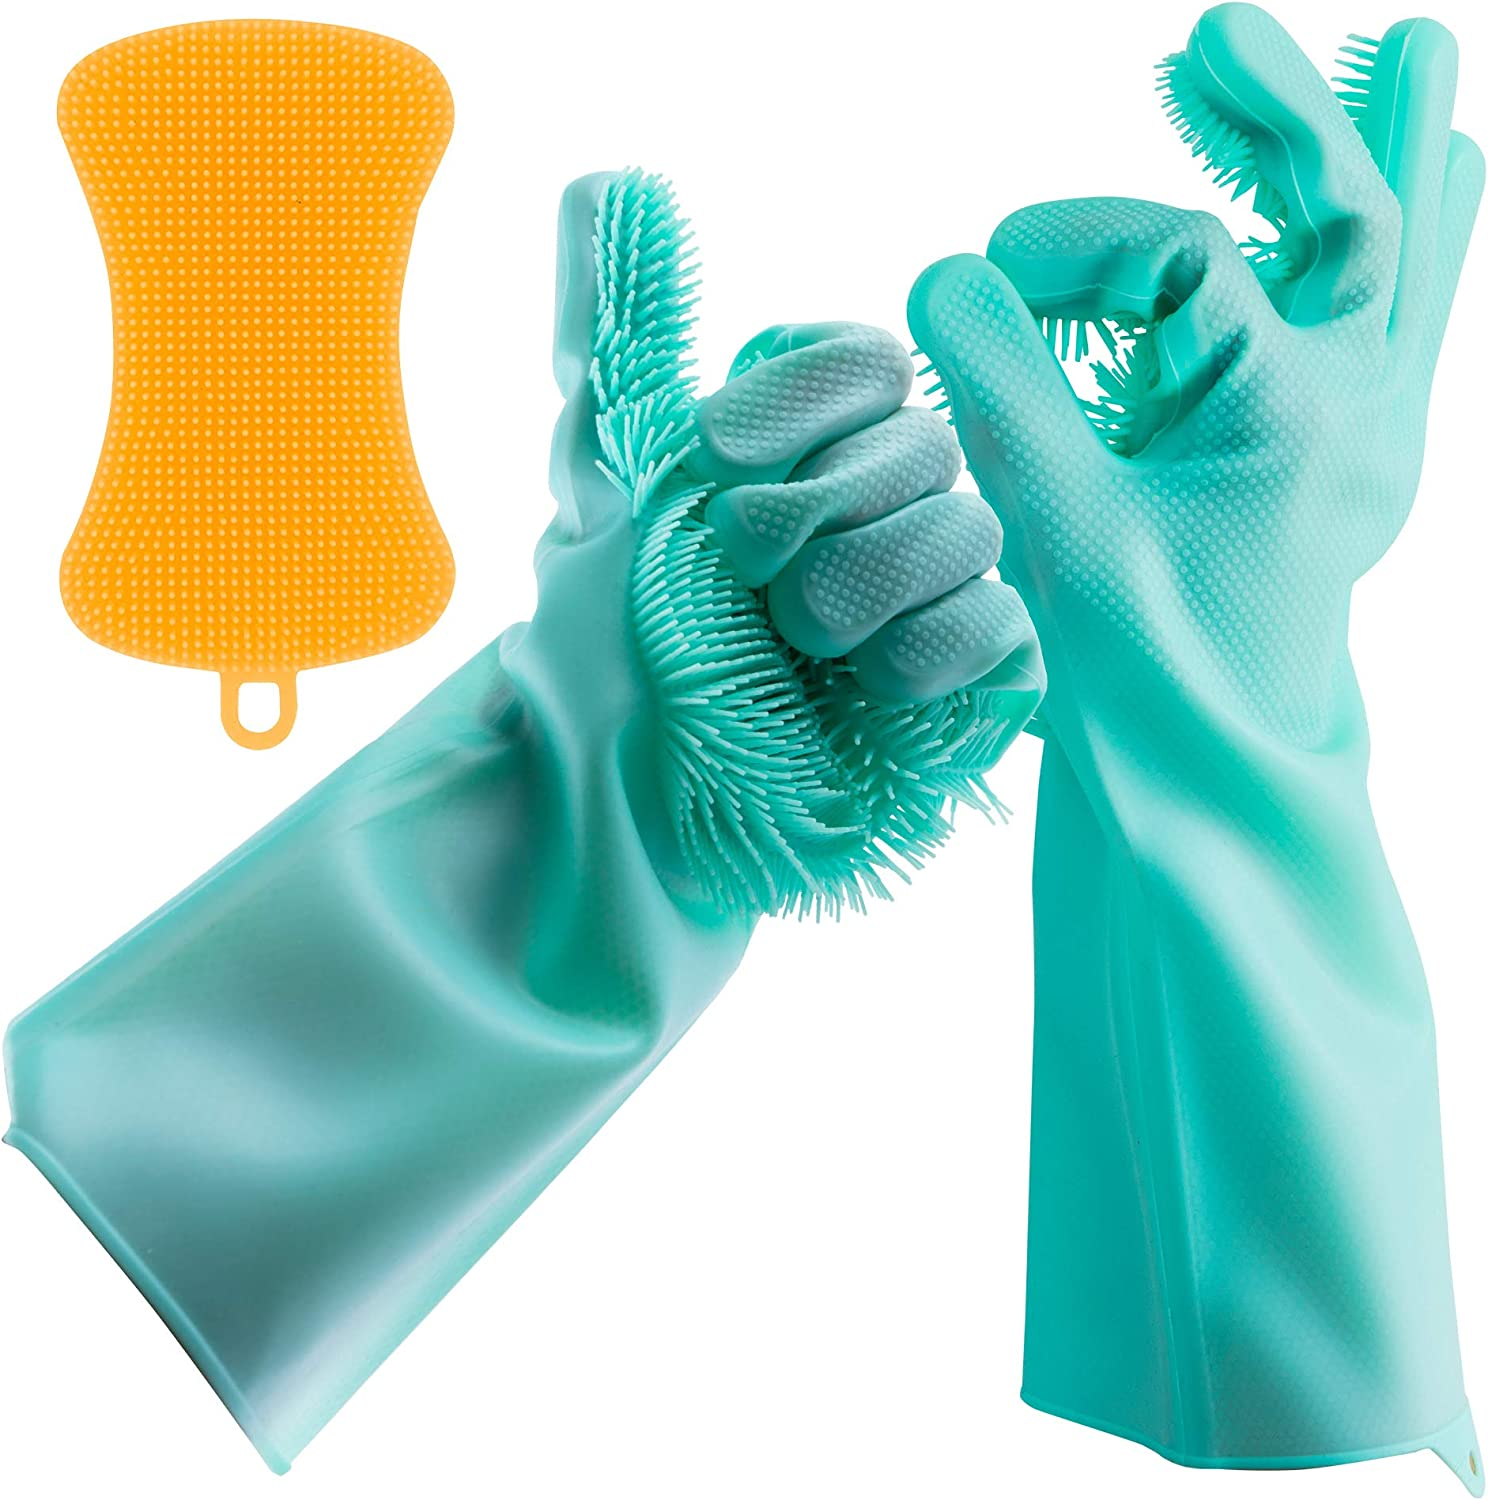 Dishwashing Gloves Silicone Scrubber Reusable - Premium Set 1 Pair Magic Rubber Green Scrubbing Gloves and 1 Yellow Silicone Sponge Heat Resistant for Cleaning Dishes Home Kitchen Bathroom Pet Care